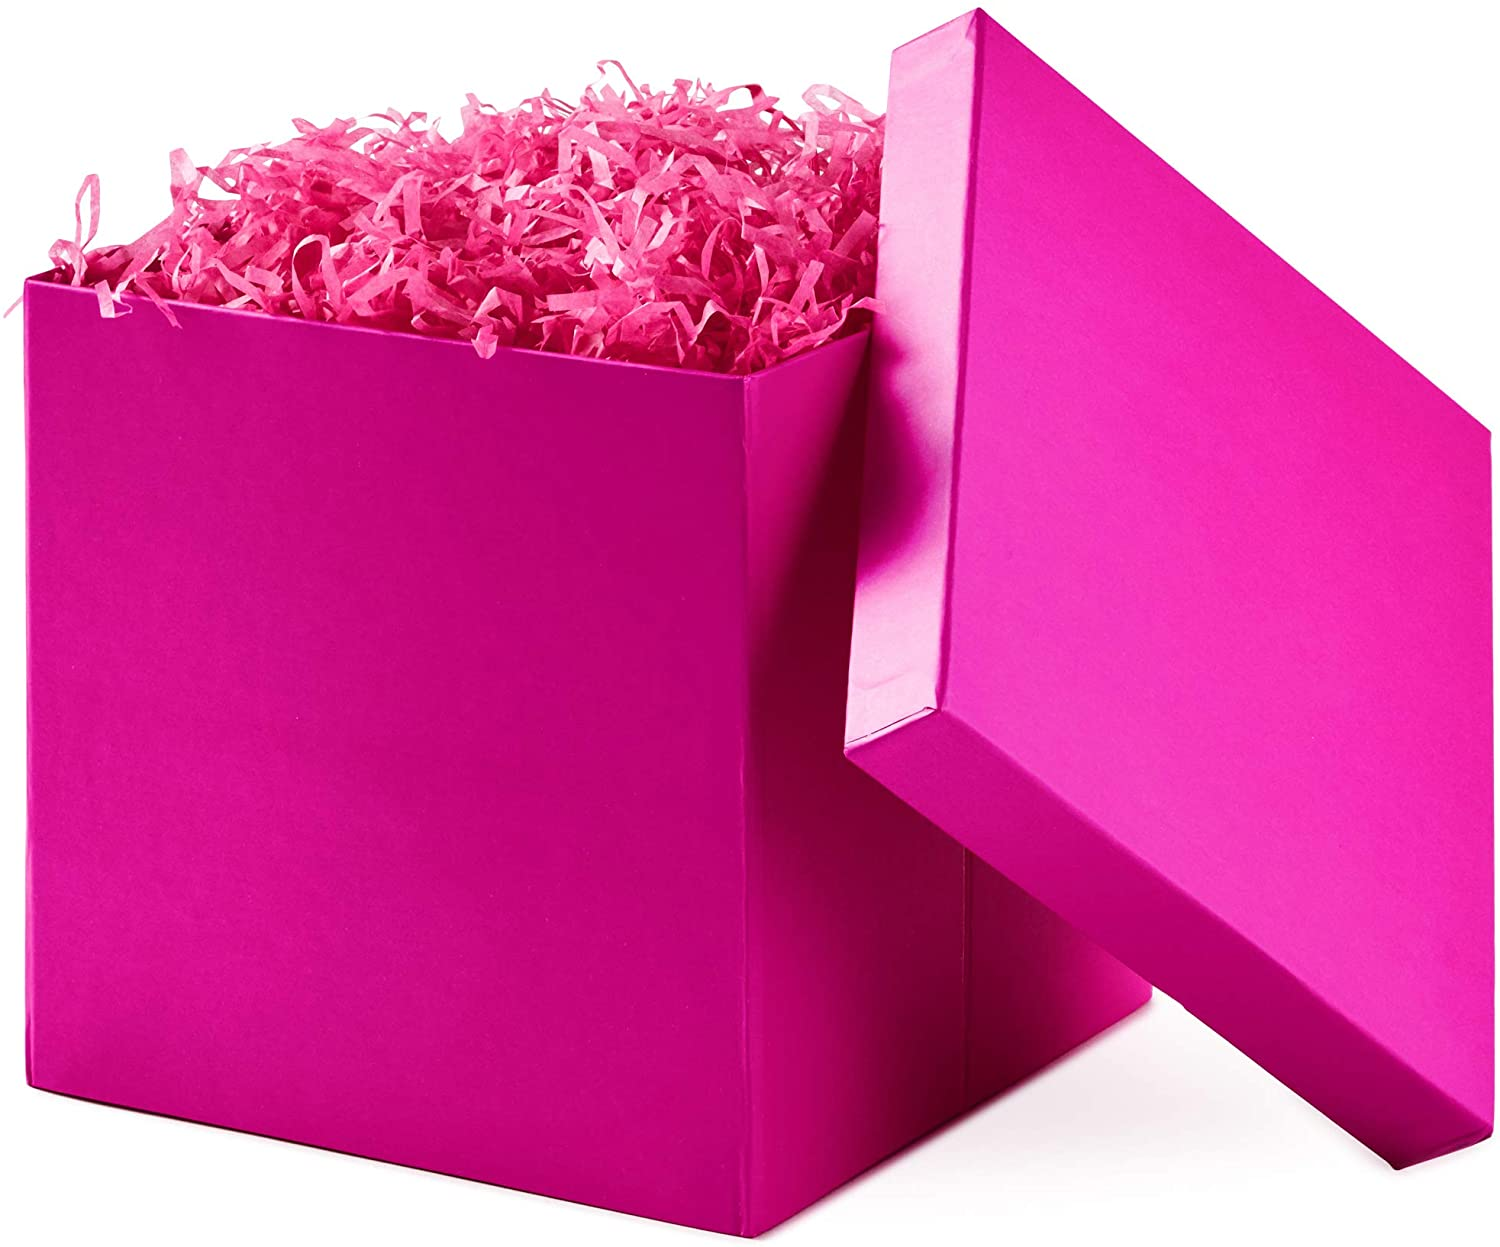 """Hallmark 7"""" Gift Box with Lid (Hot Pink) for Birthdays, Bridal Showers, Weddings, Baby Showers and More (Hot Pink)"""